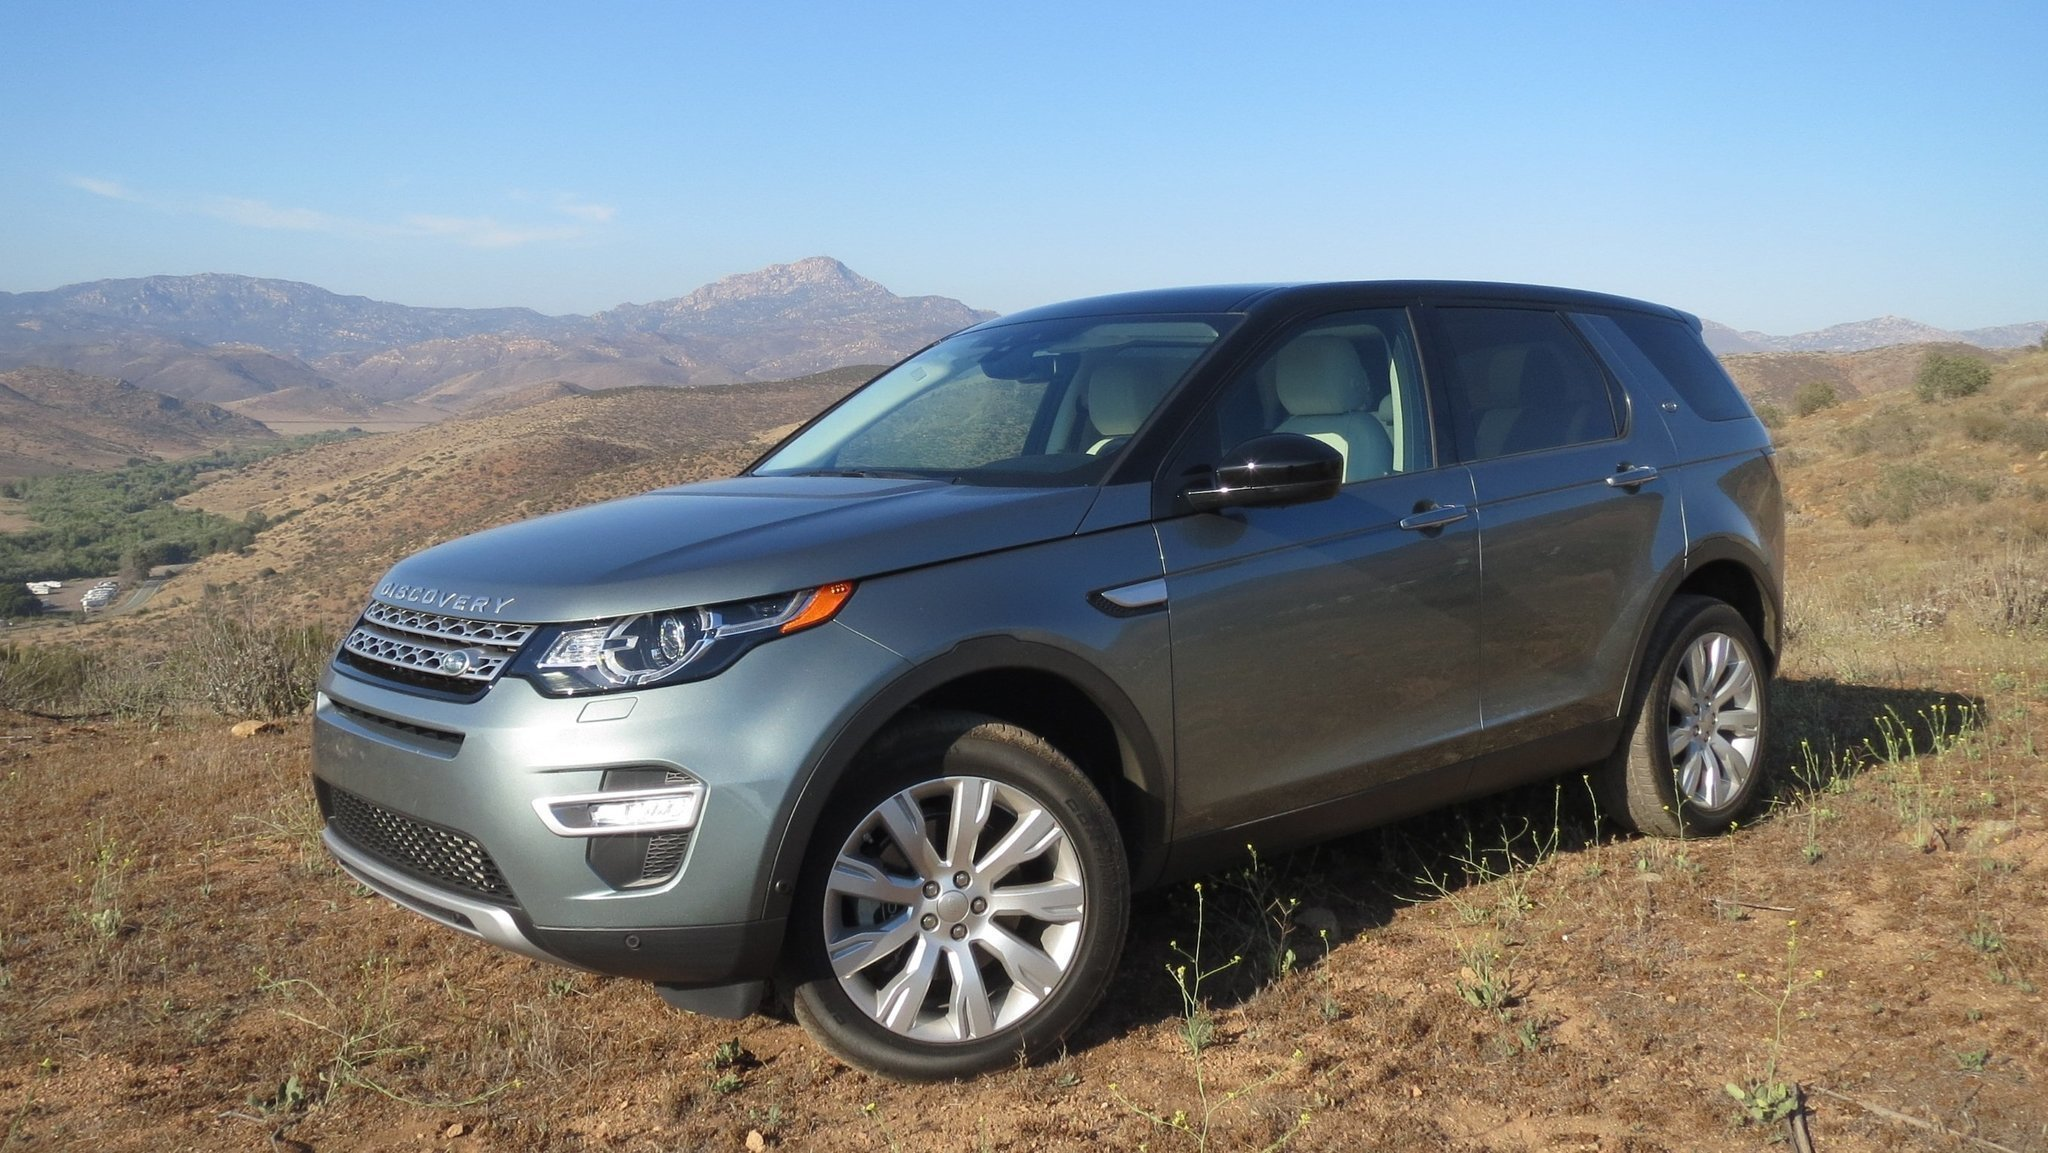 Land Rover s pact Discovery Sport is fit and refined The San